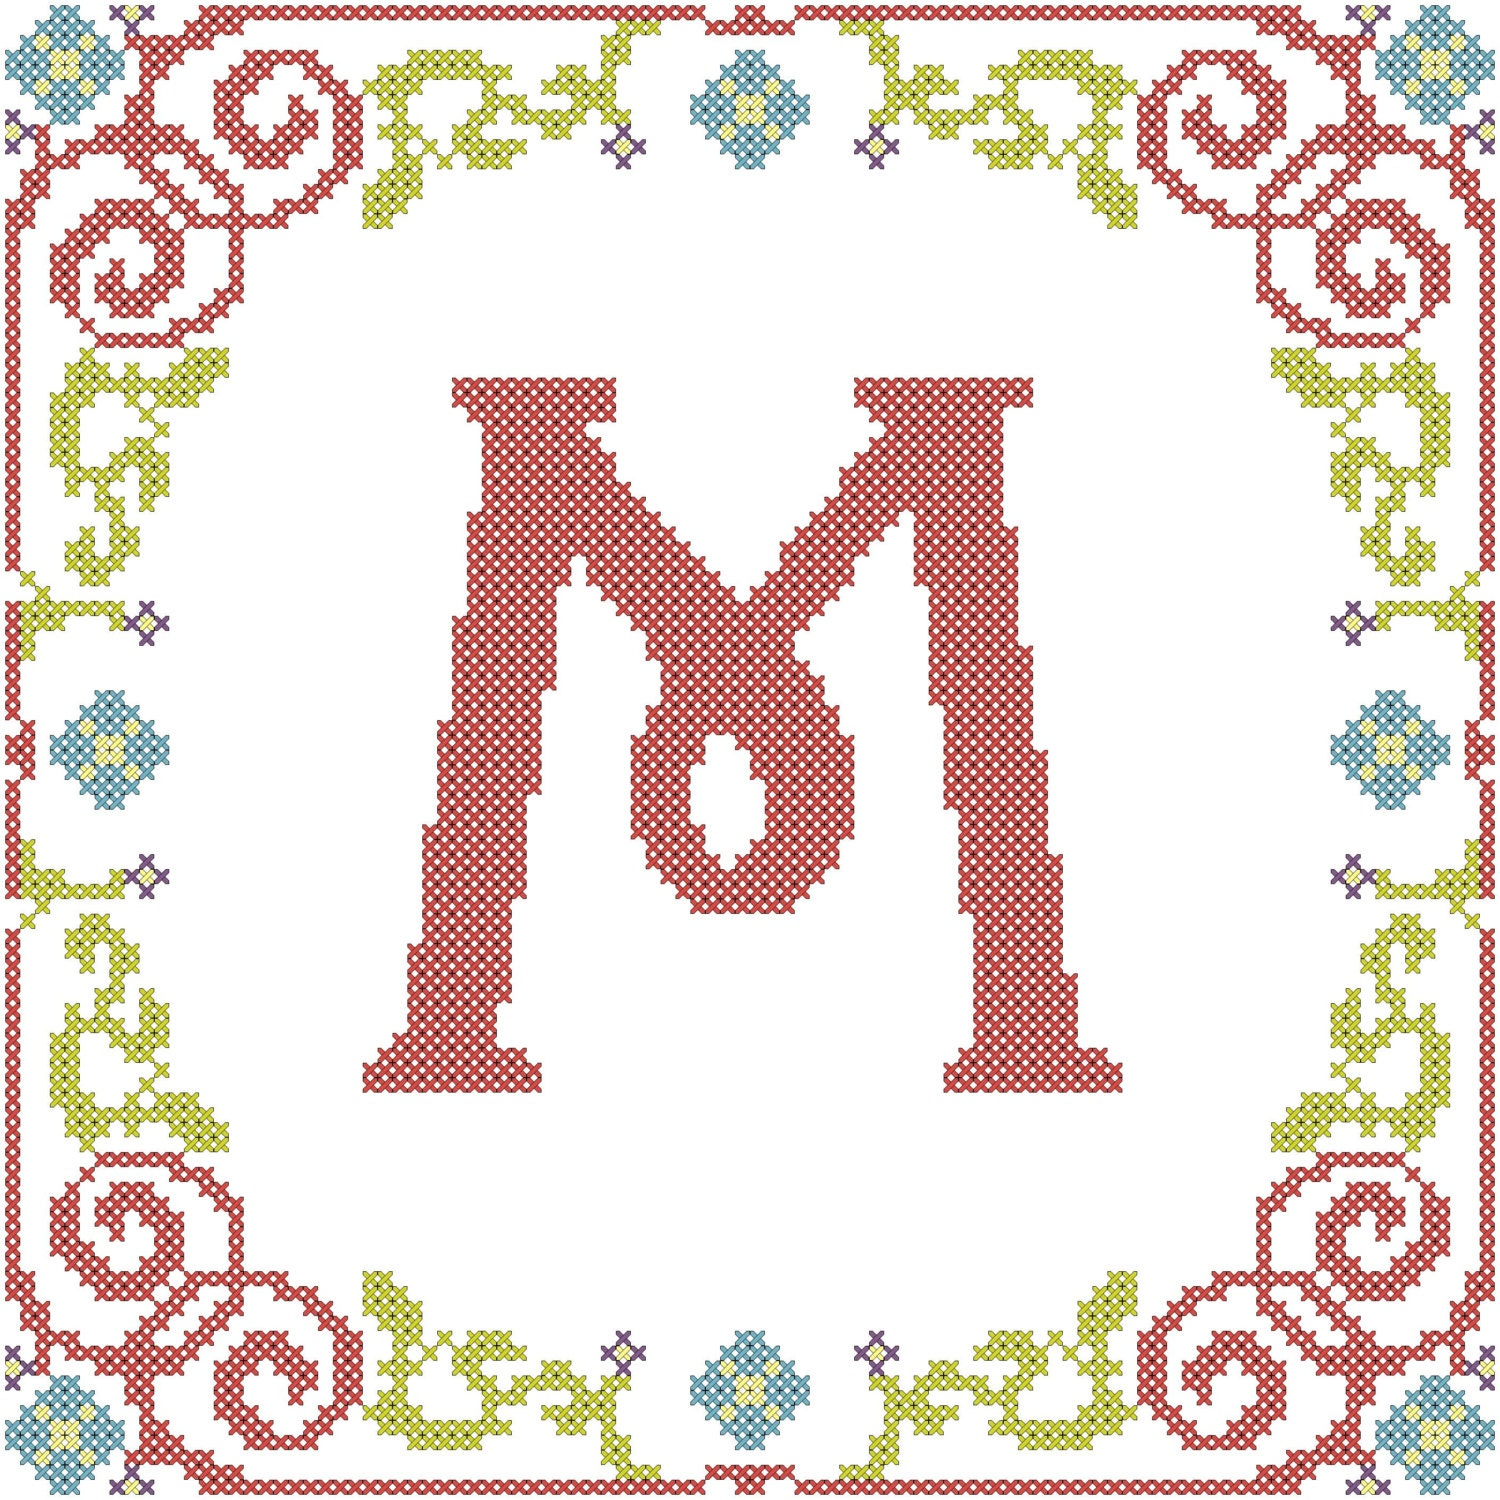 Cross stitch border pattern floral vine for square area your